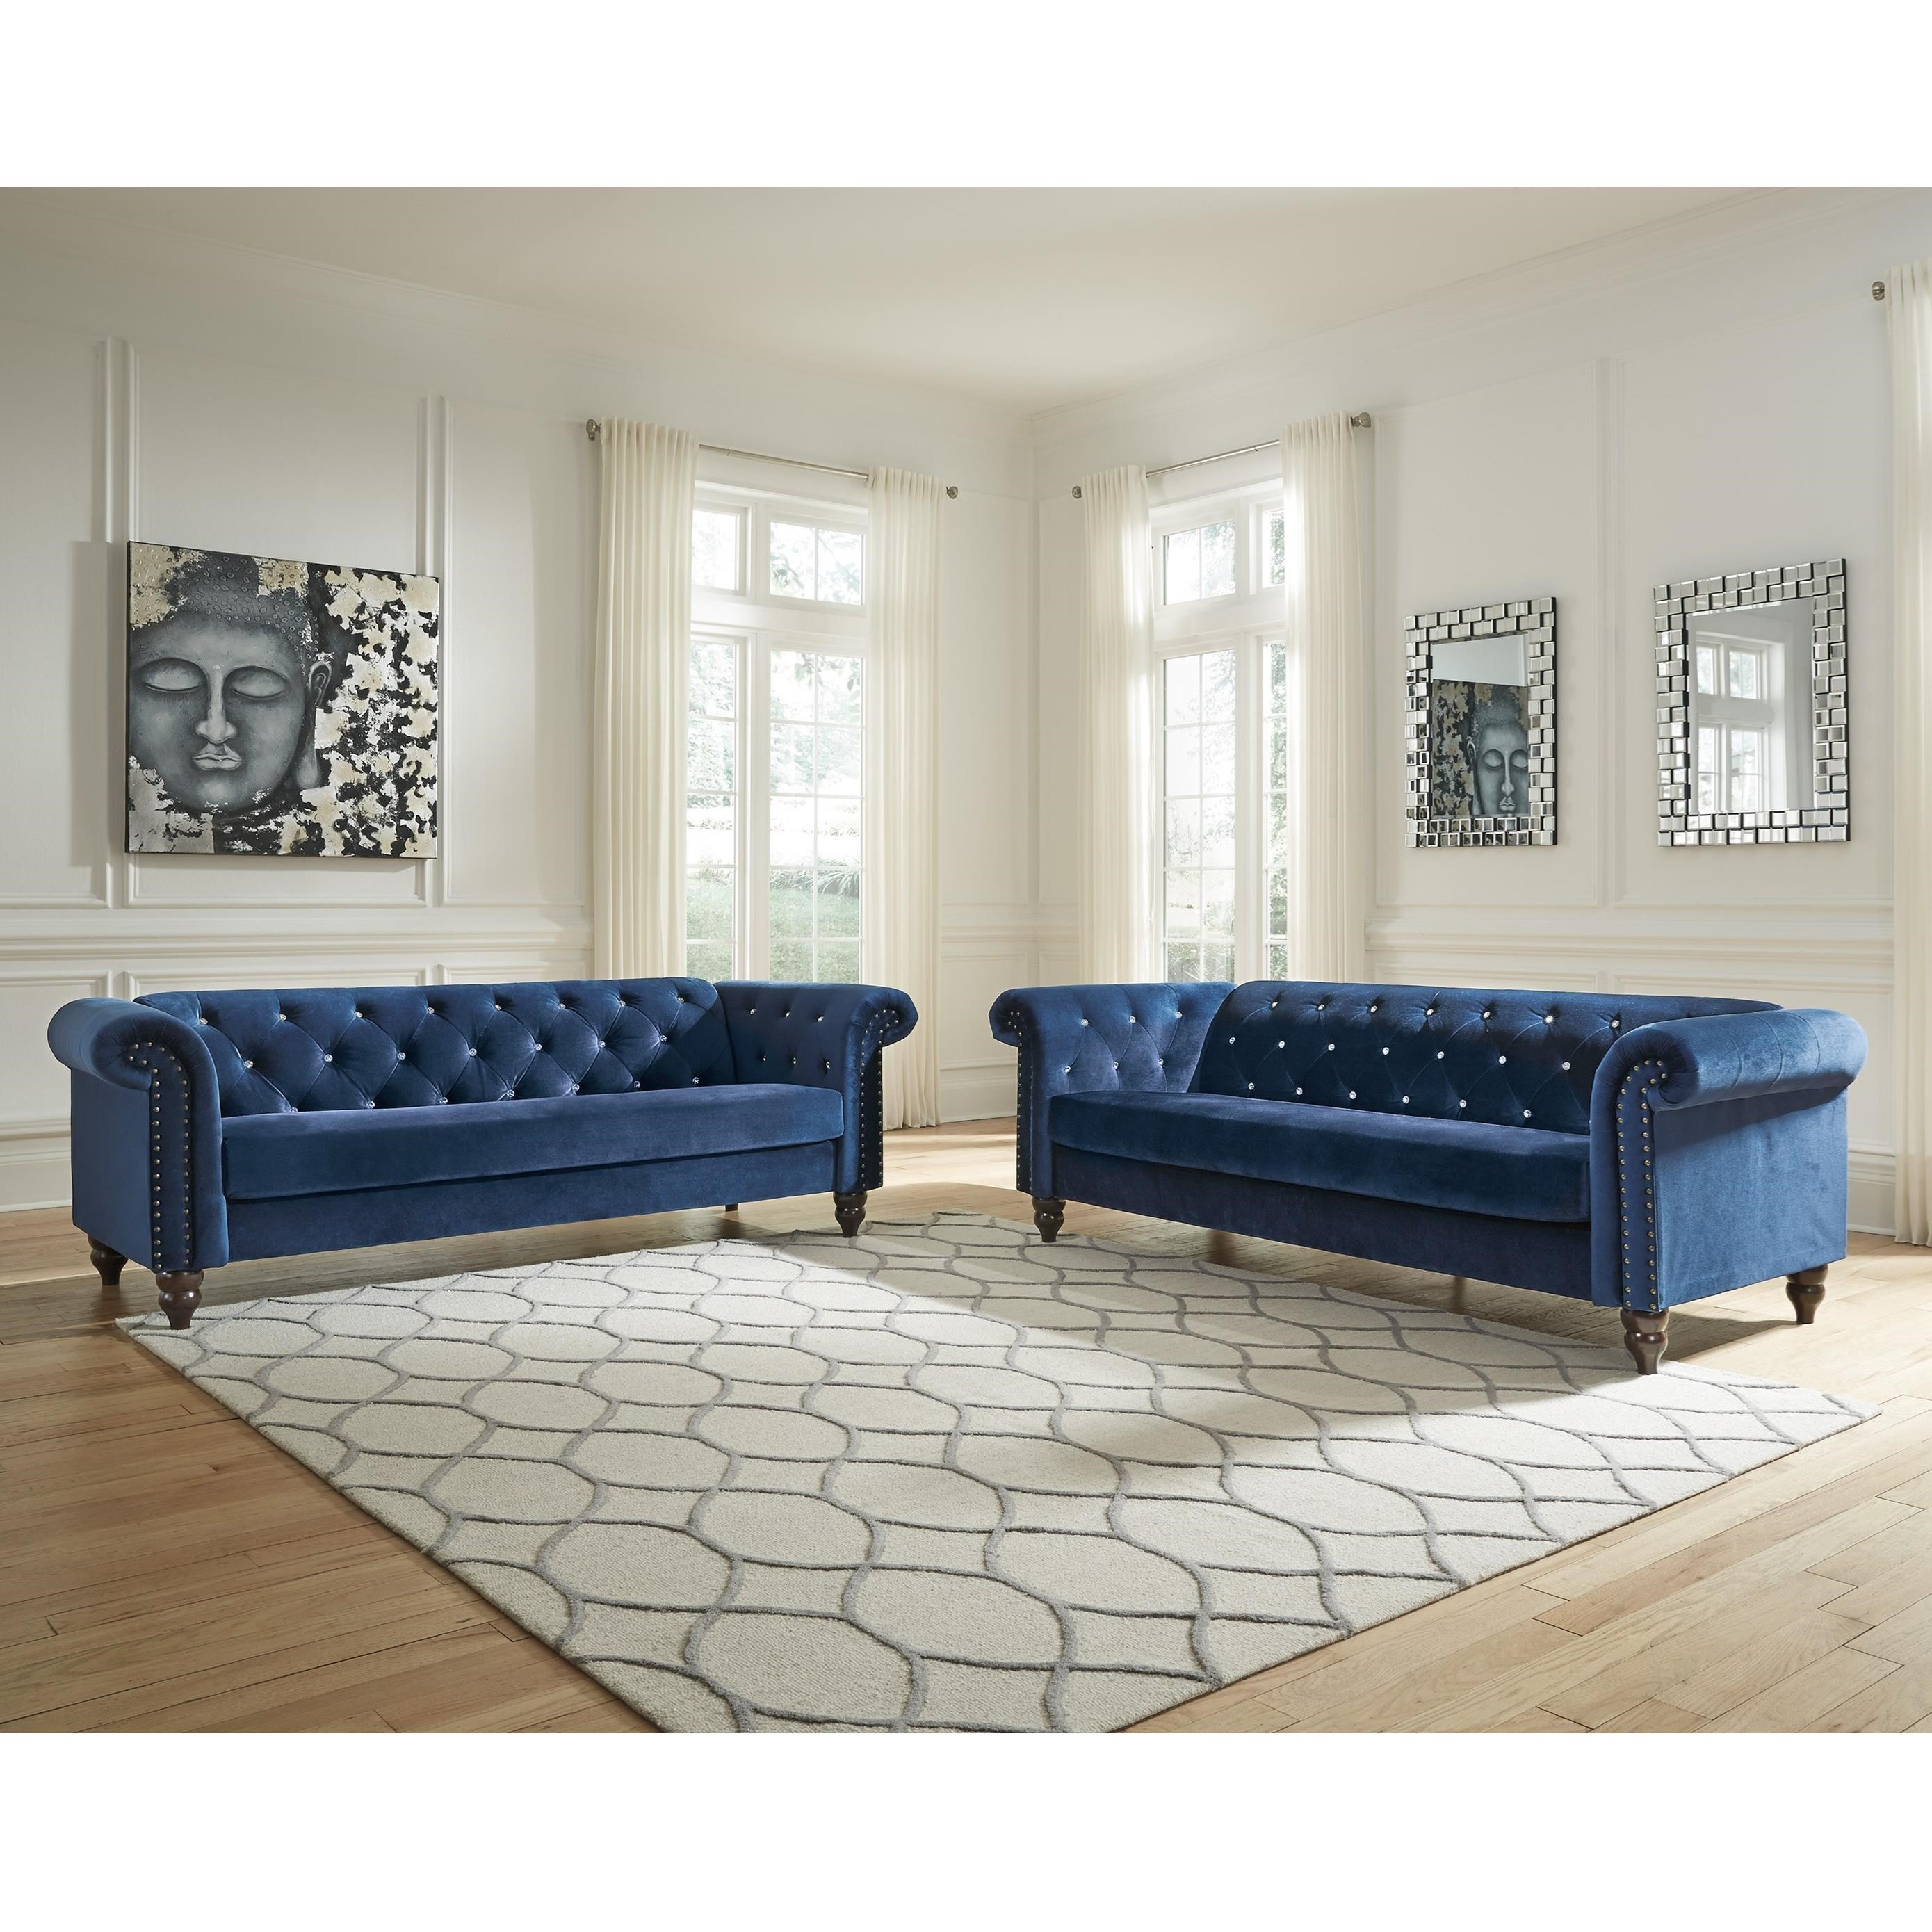 Signature Design by Ashley Malchin Stationary Living Room Group - Item Number: 40302 Living Room Group